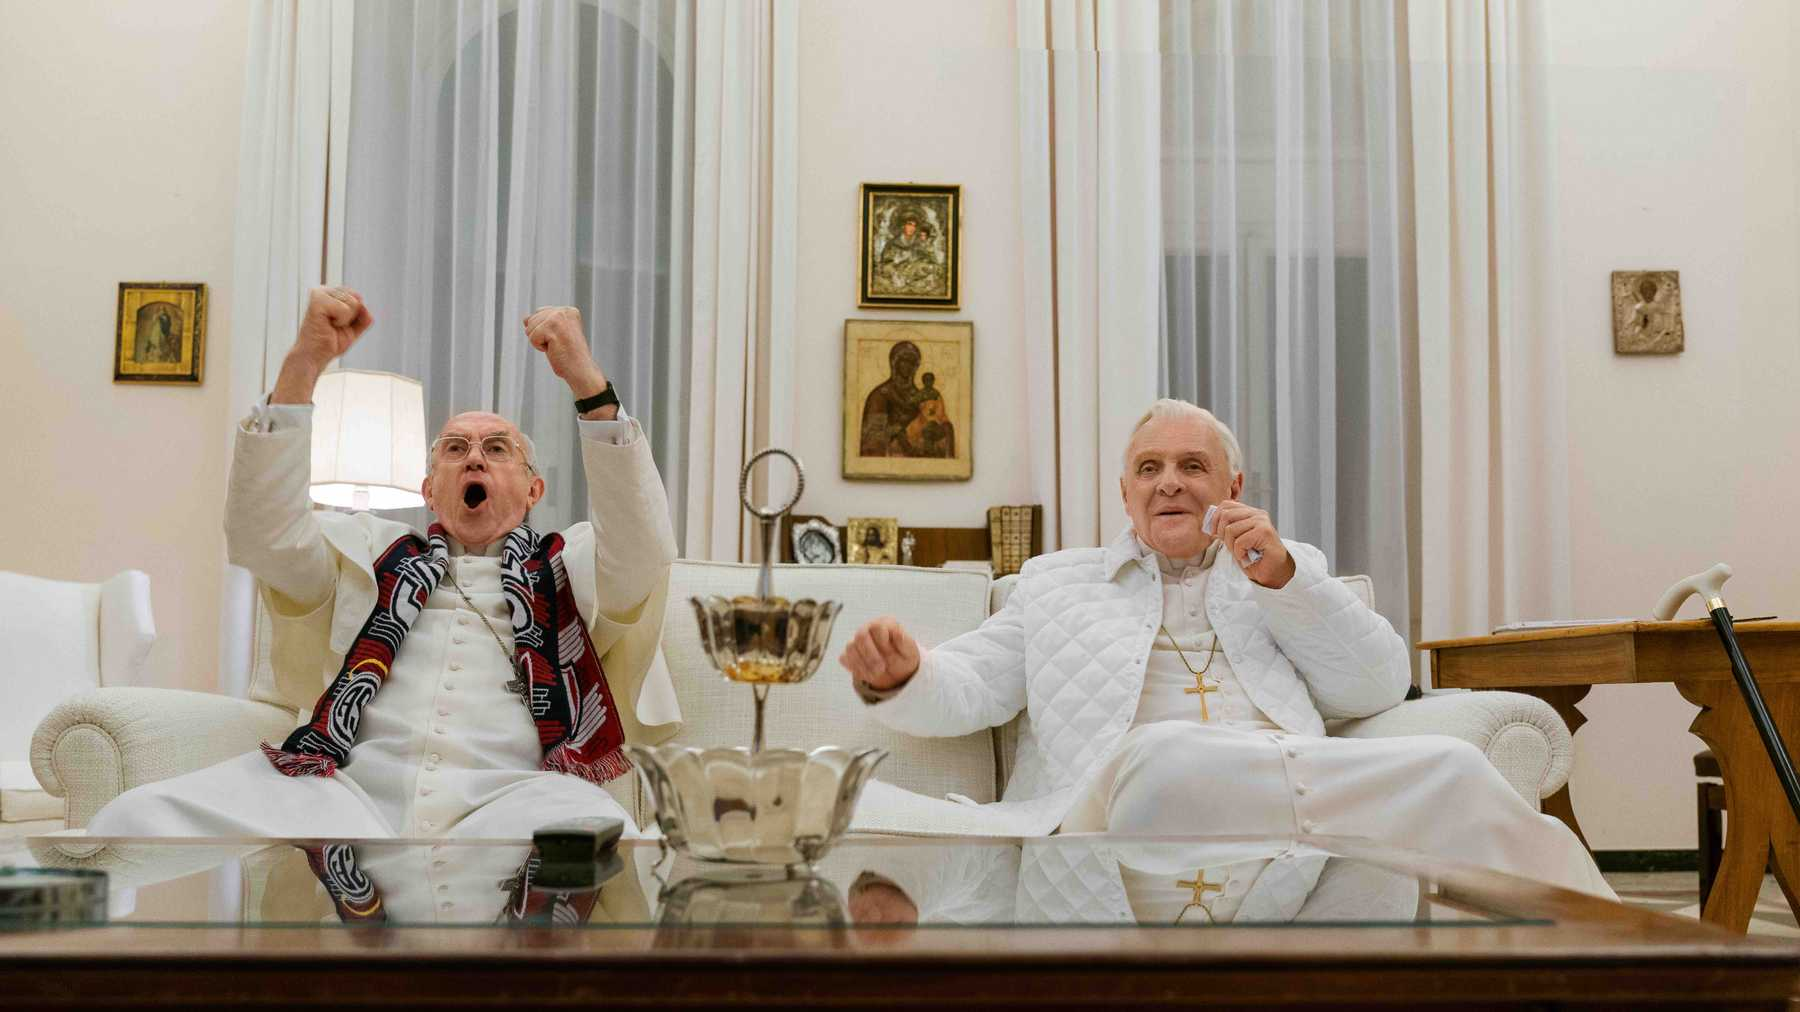 Religion, My Life Library & The 2 Popes